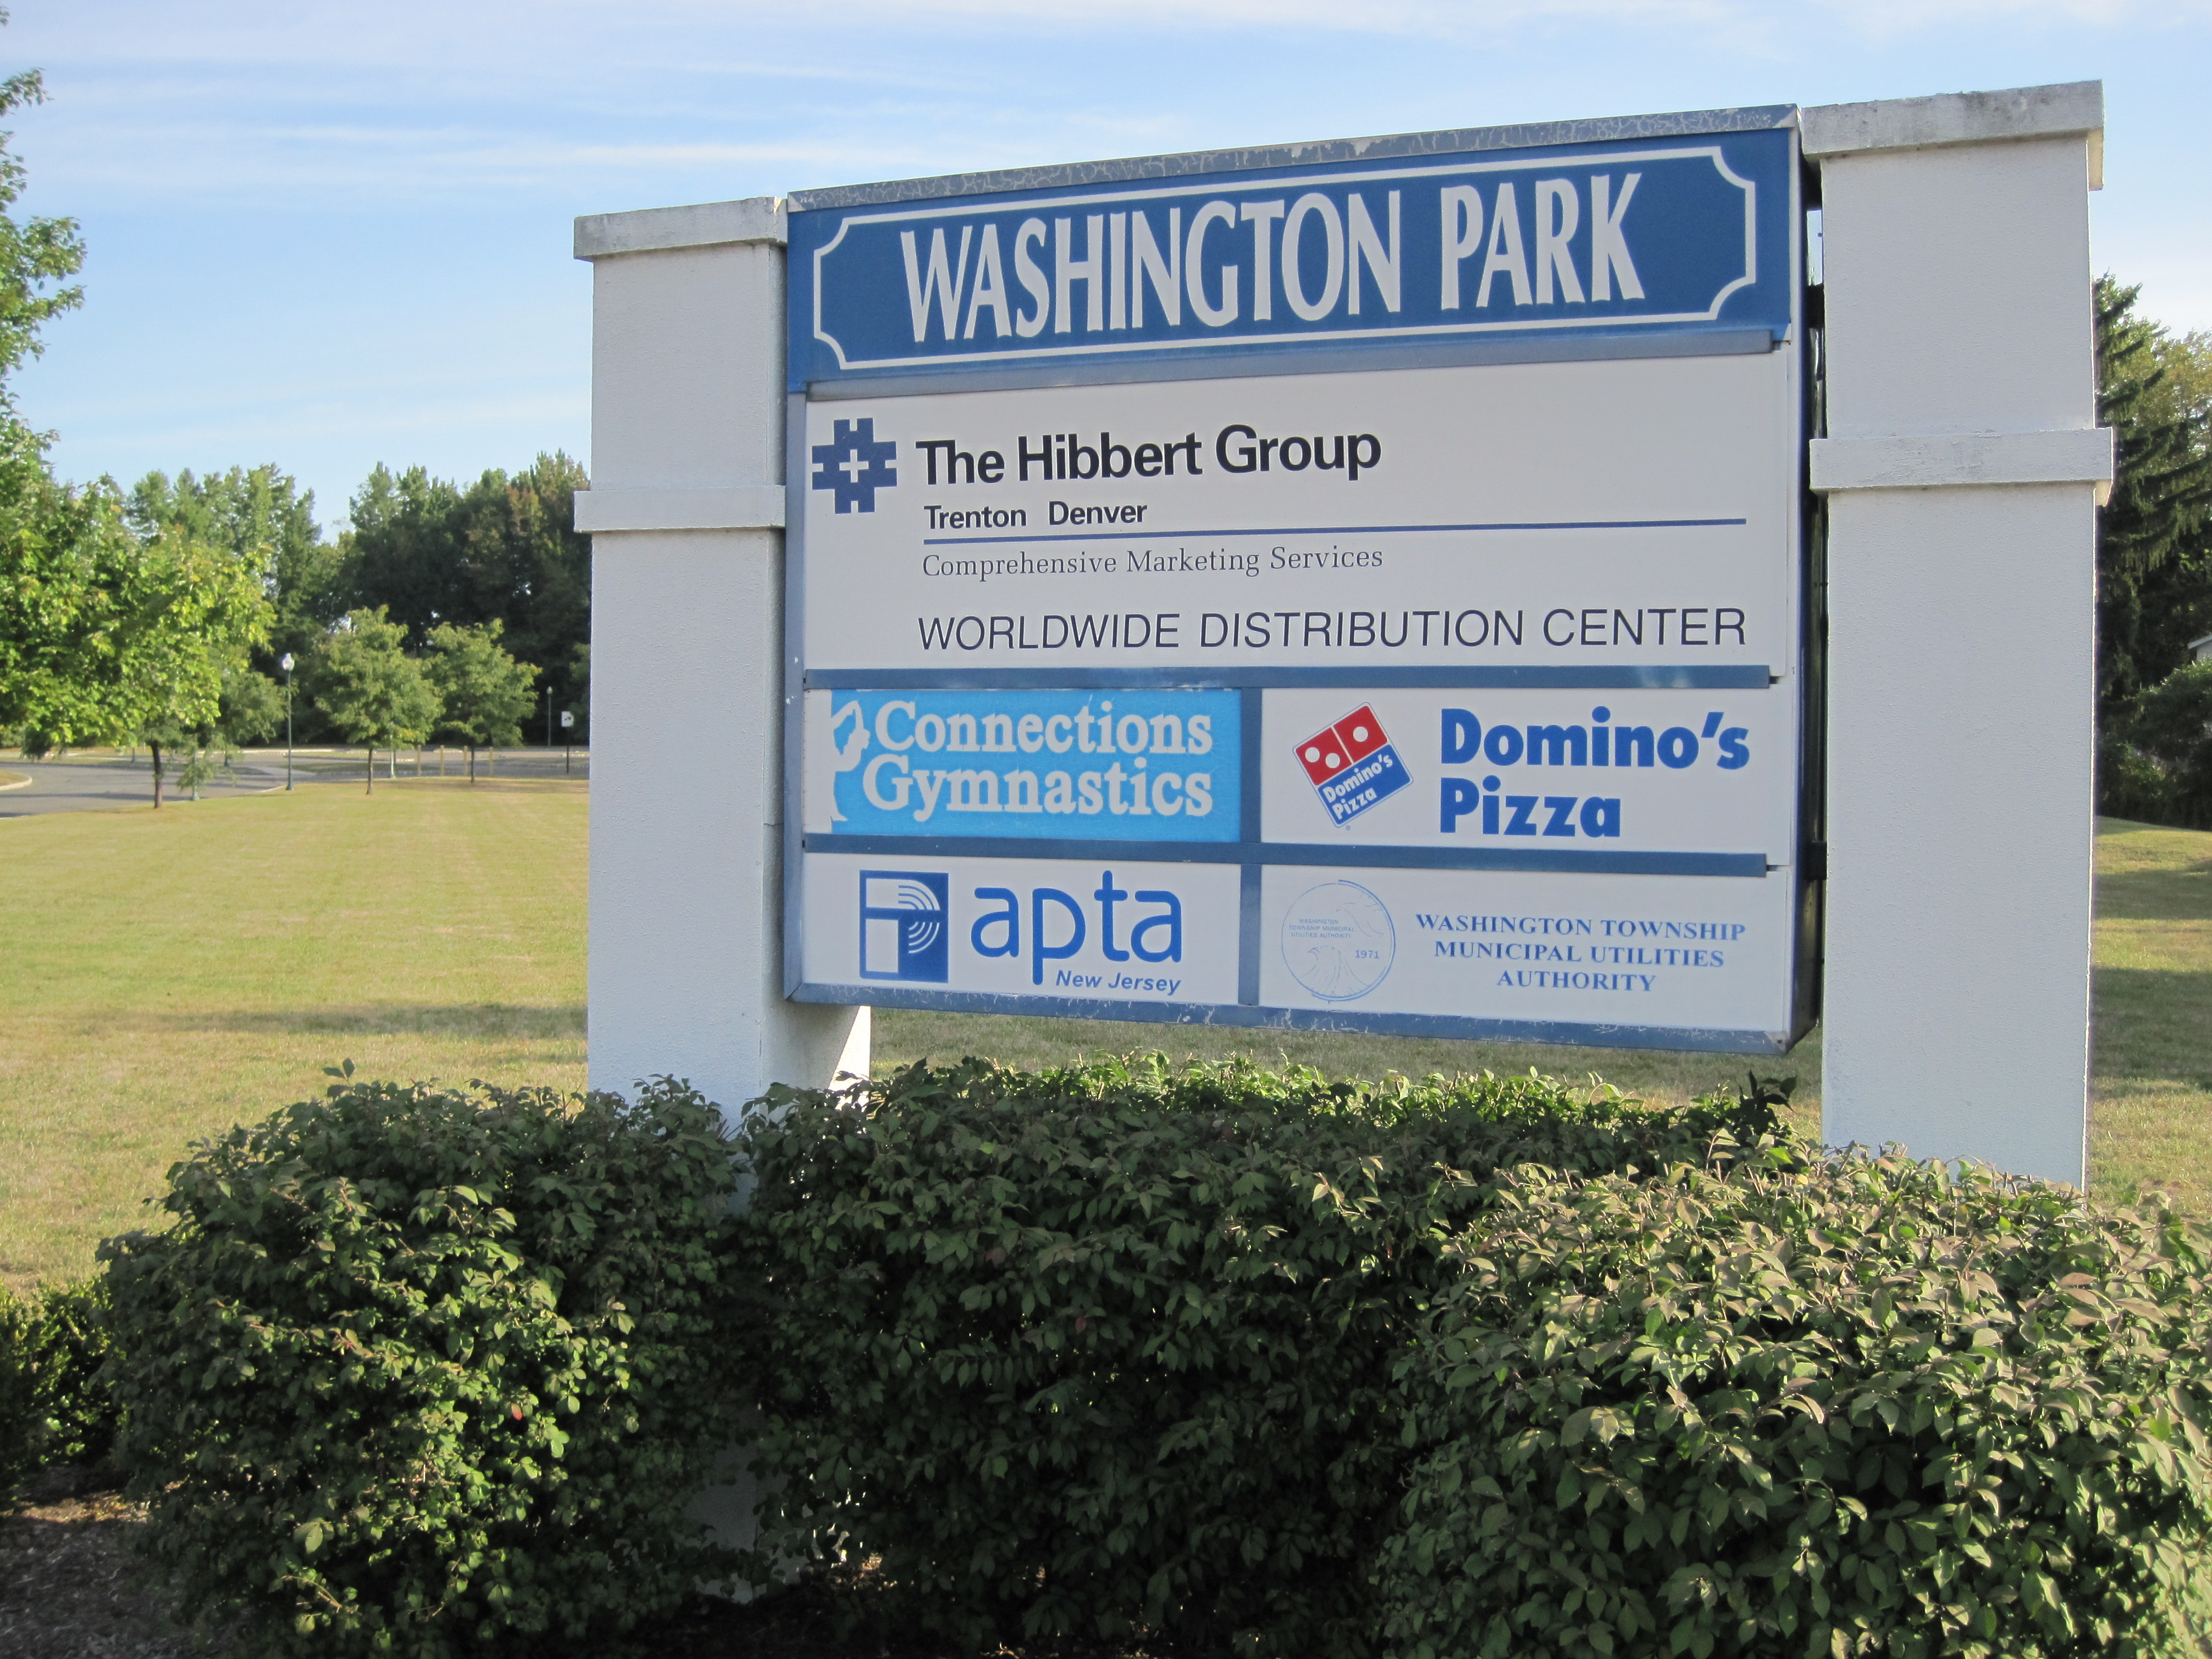 Washington Park sign near Route 130 southbound